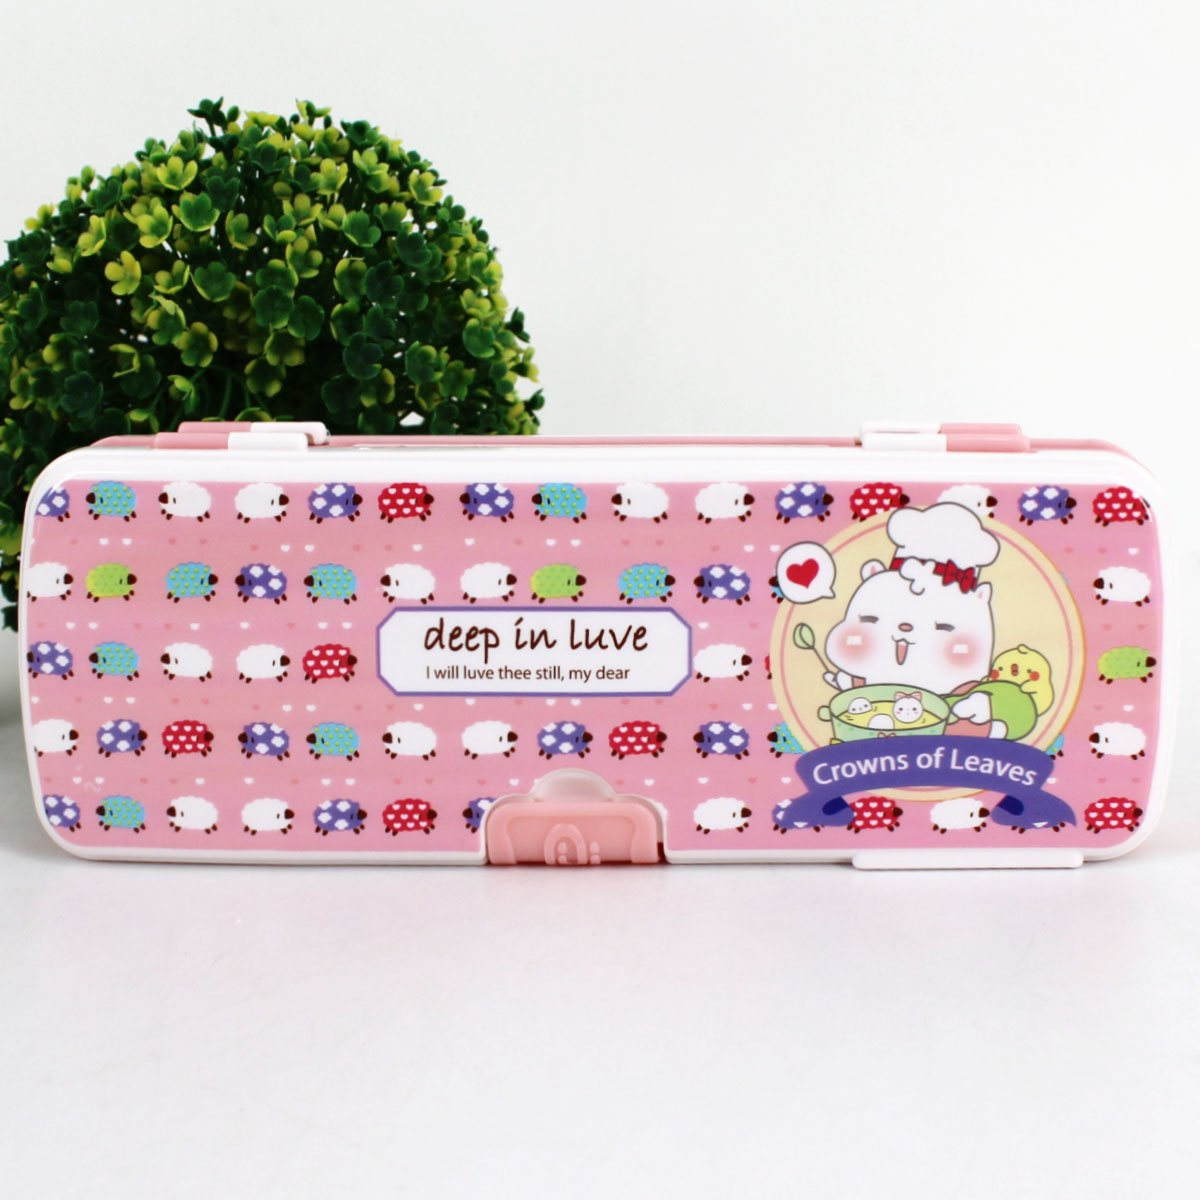 Aisa Colorful Cartoon Animals Pattern Pencil Case Multifunctional Pencil Box for Student Special Gifts for Children/Kids by Aisa (Image #4)